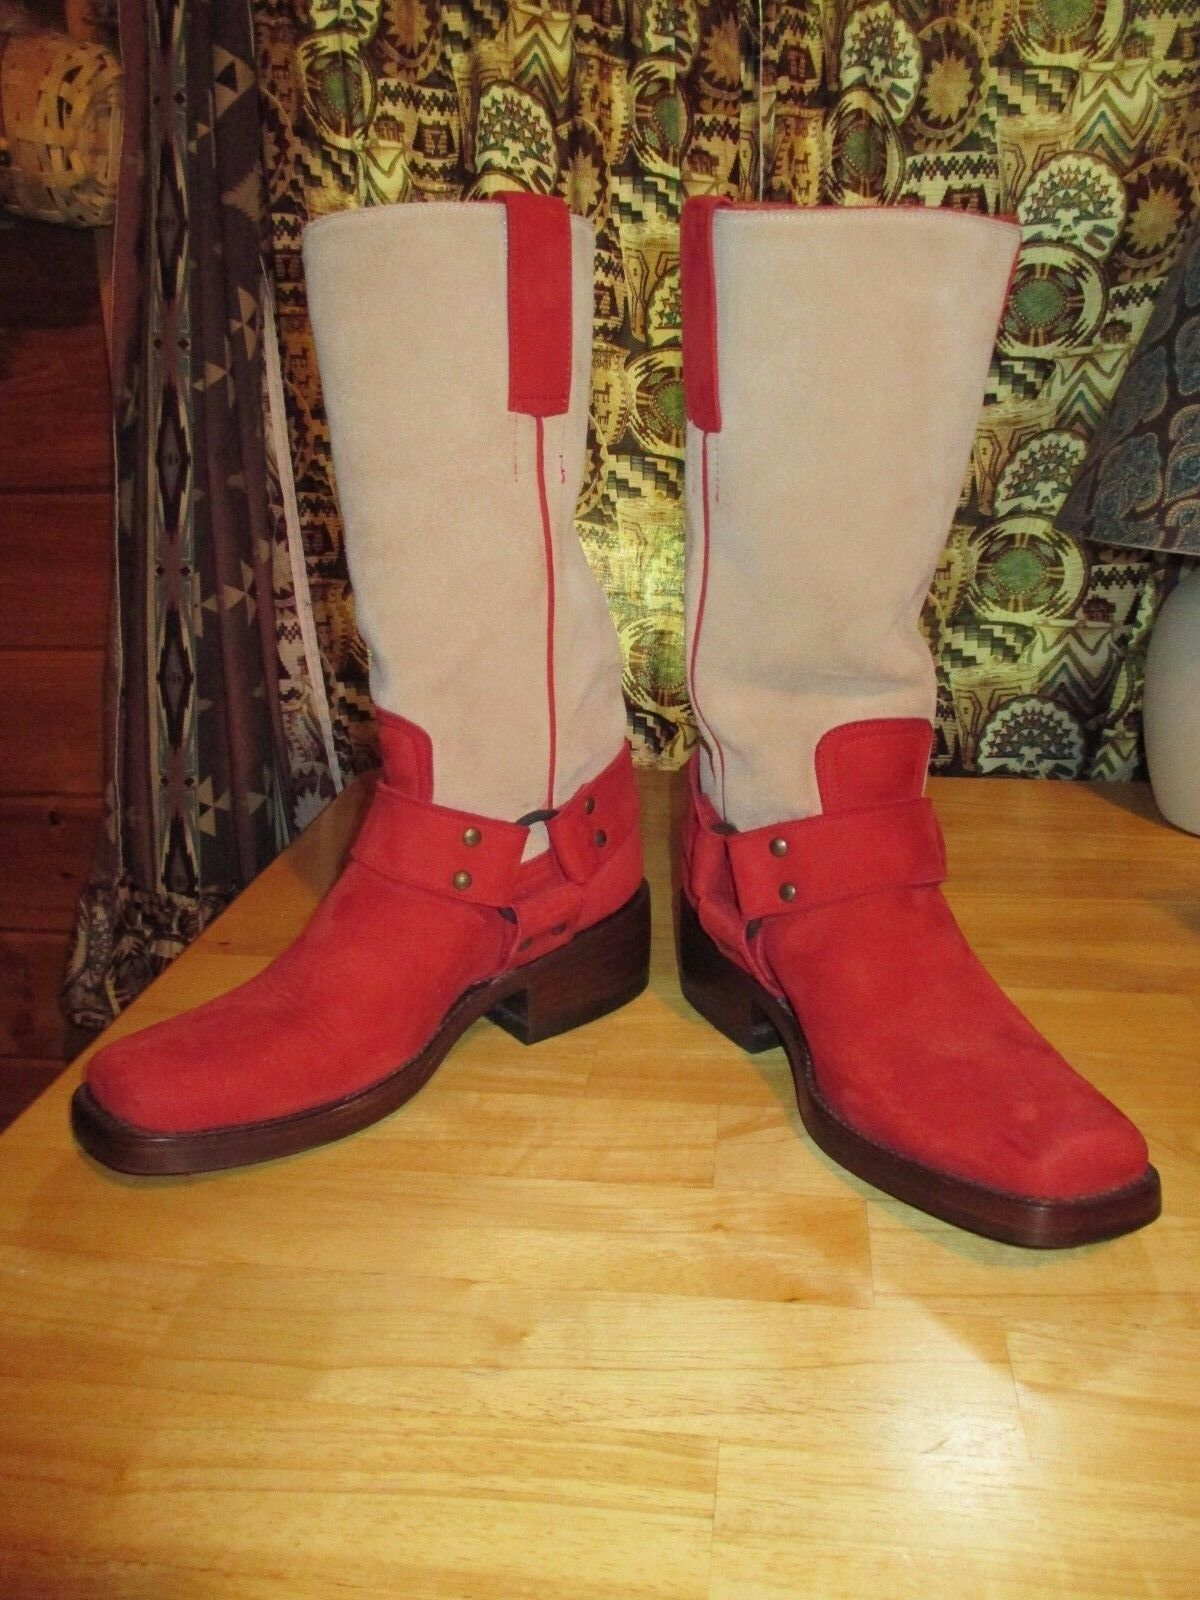 Womens RYAN MICHEAL MICHEAL MICHEAL Suede Leather Mid-Calf Harness Western Cowboy Boots Sz 6 56295a